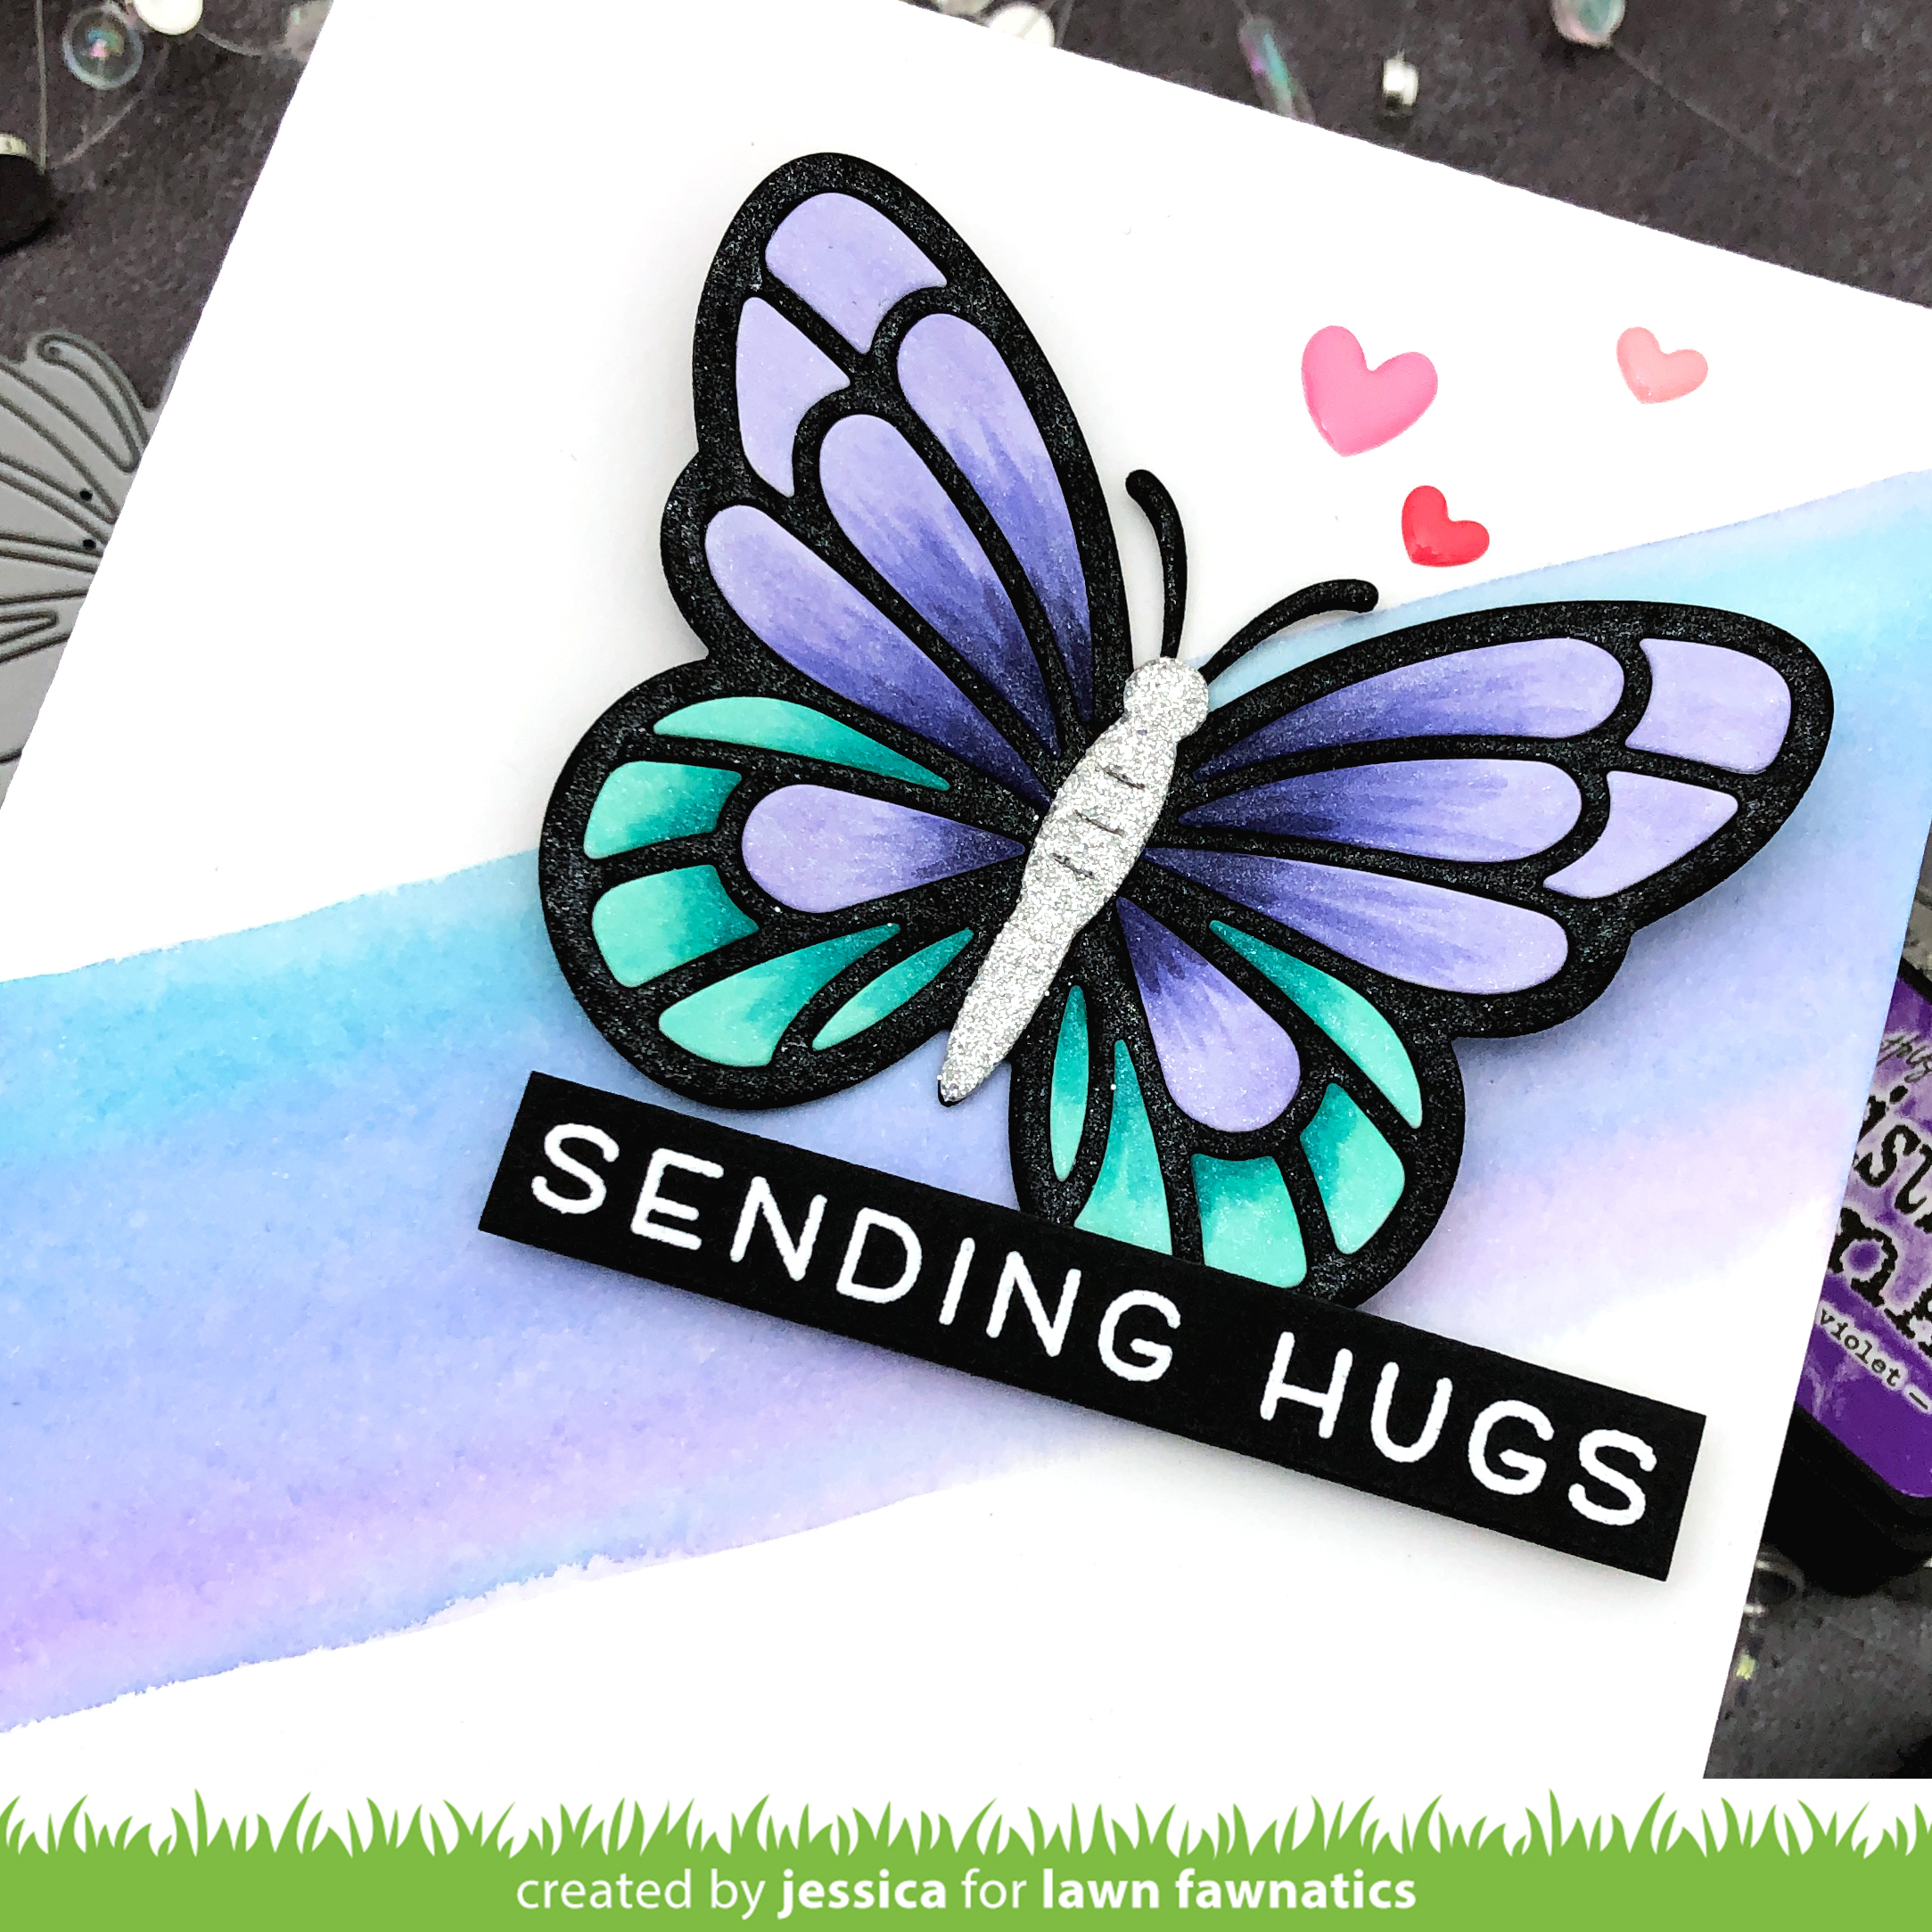 Sending Hugs by Jessica Frost-Ballas for Lawn Fawnatics